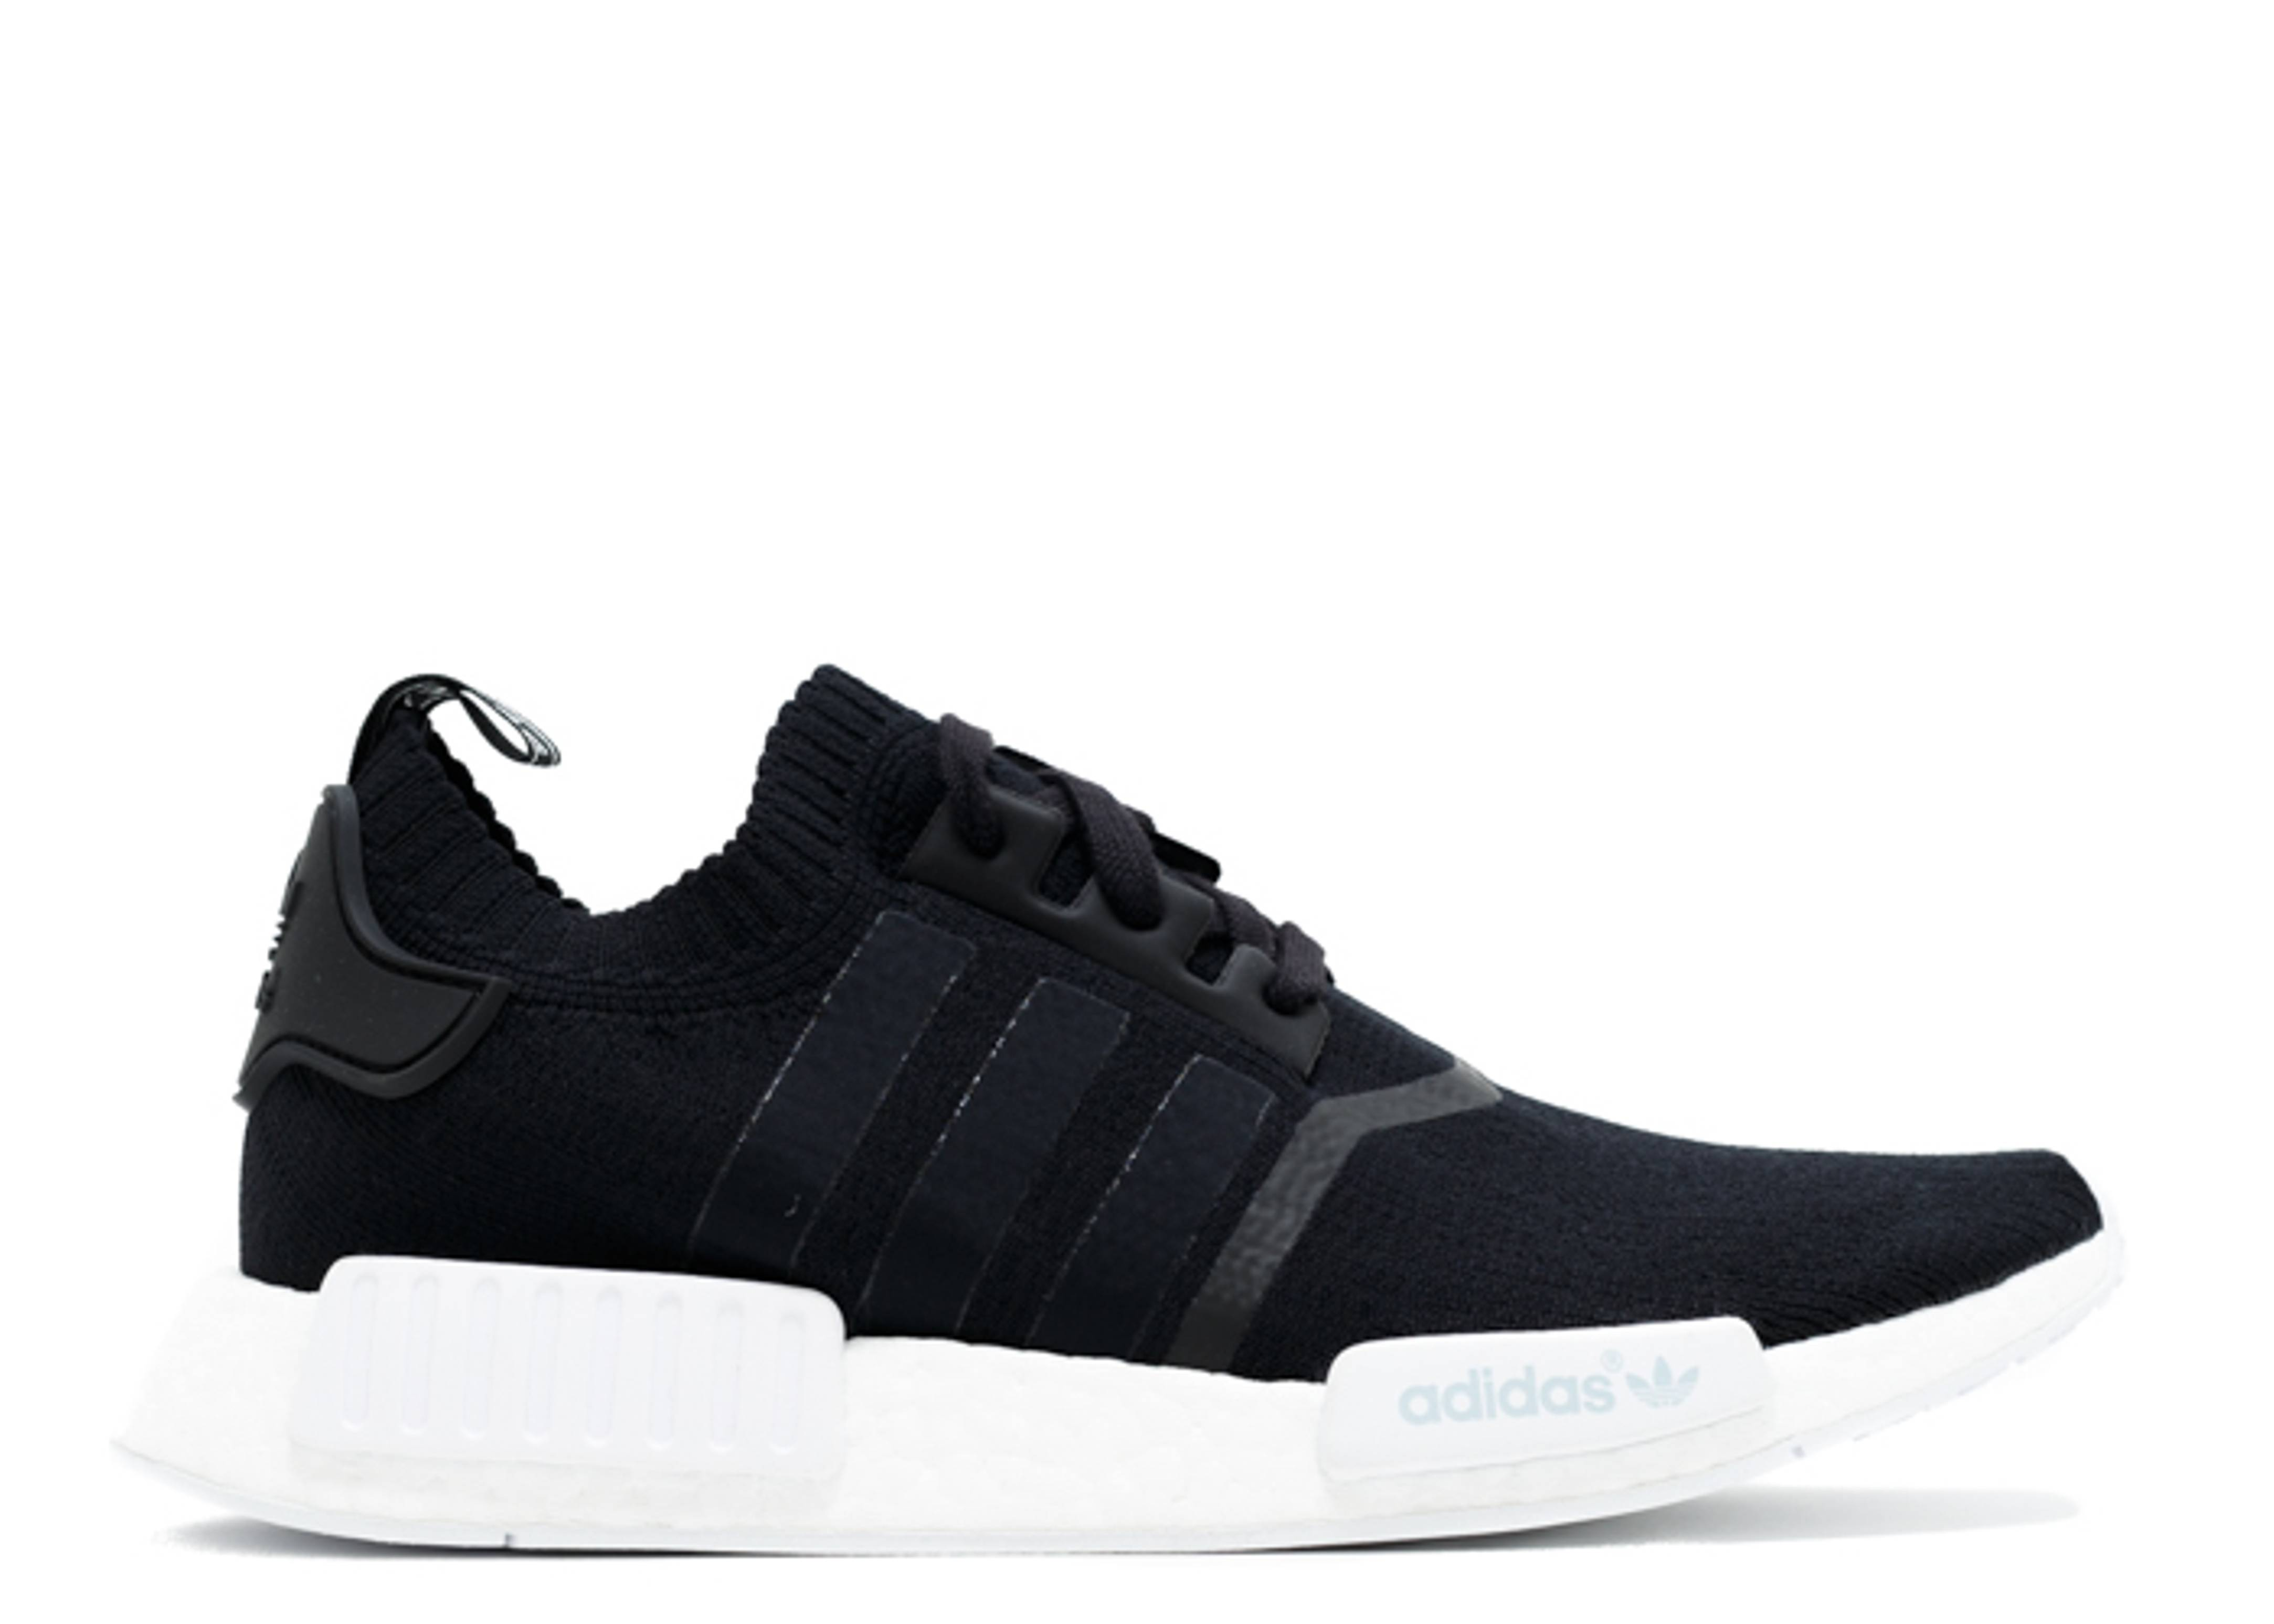 outlet store 7d918 3544f nmd r1 pk